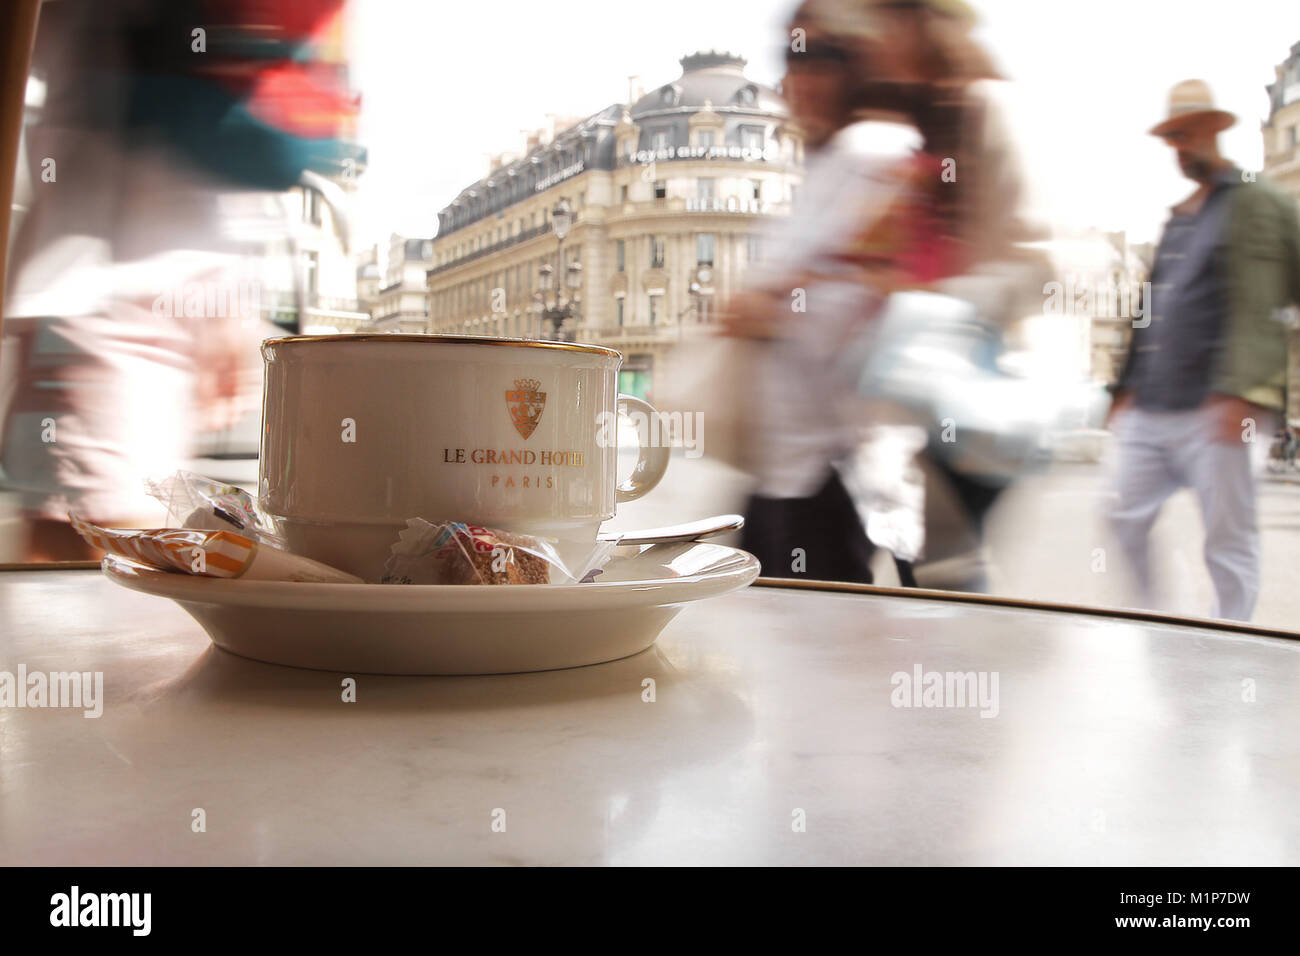 Cup of coffee in the fast-paced inner city of Paris - Stock Image